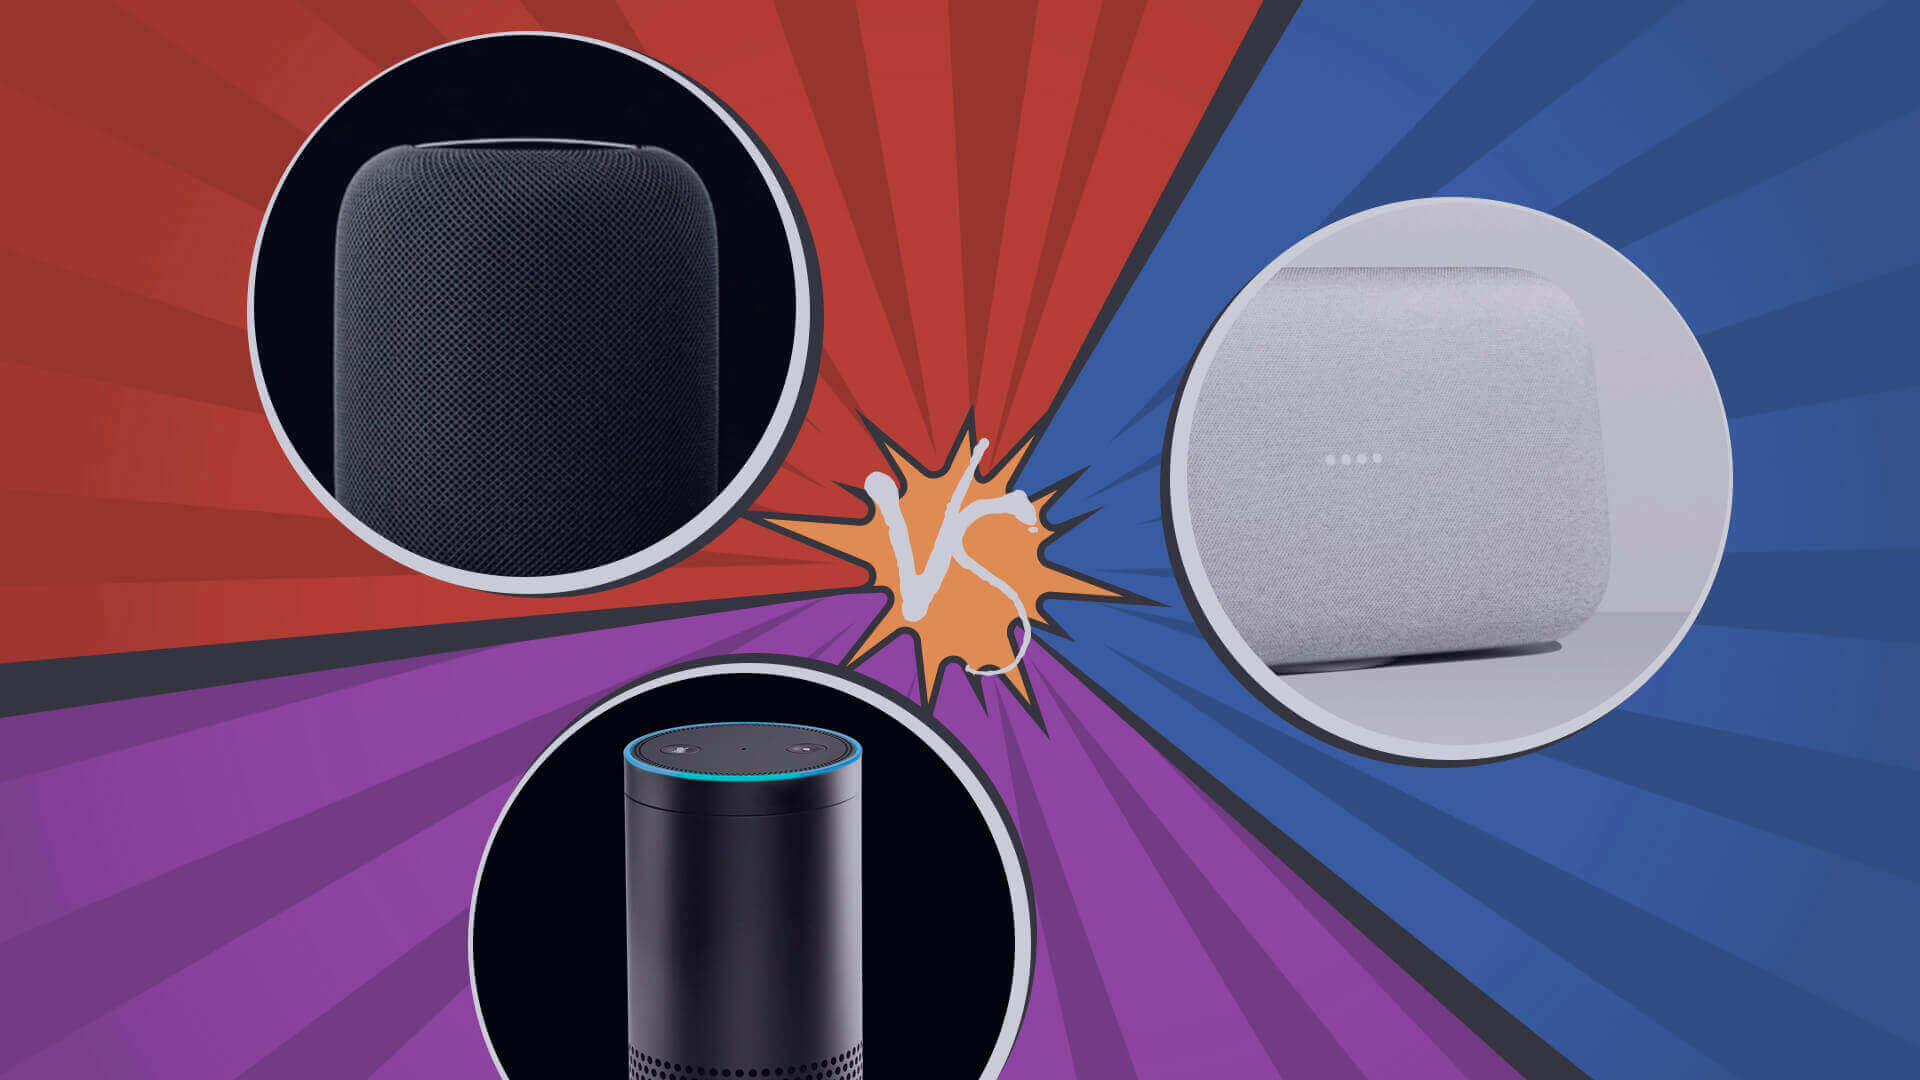 The battle for the best smart home device